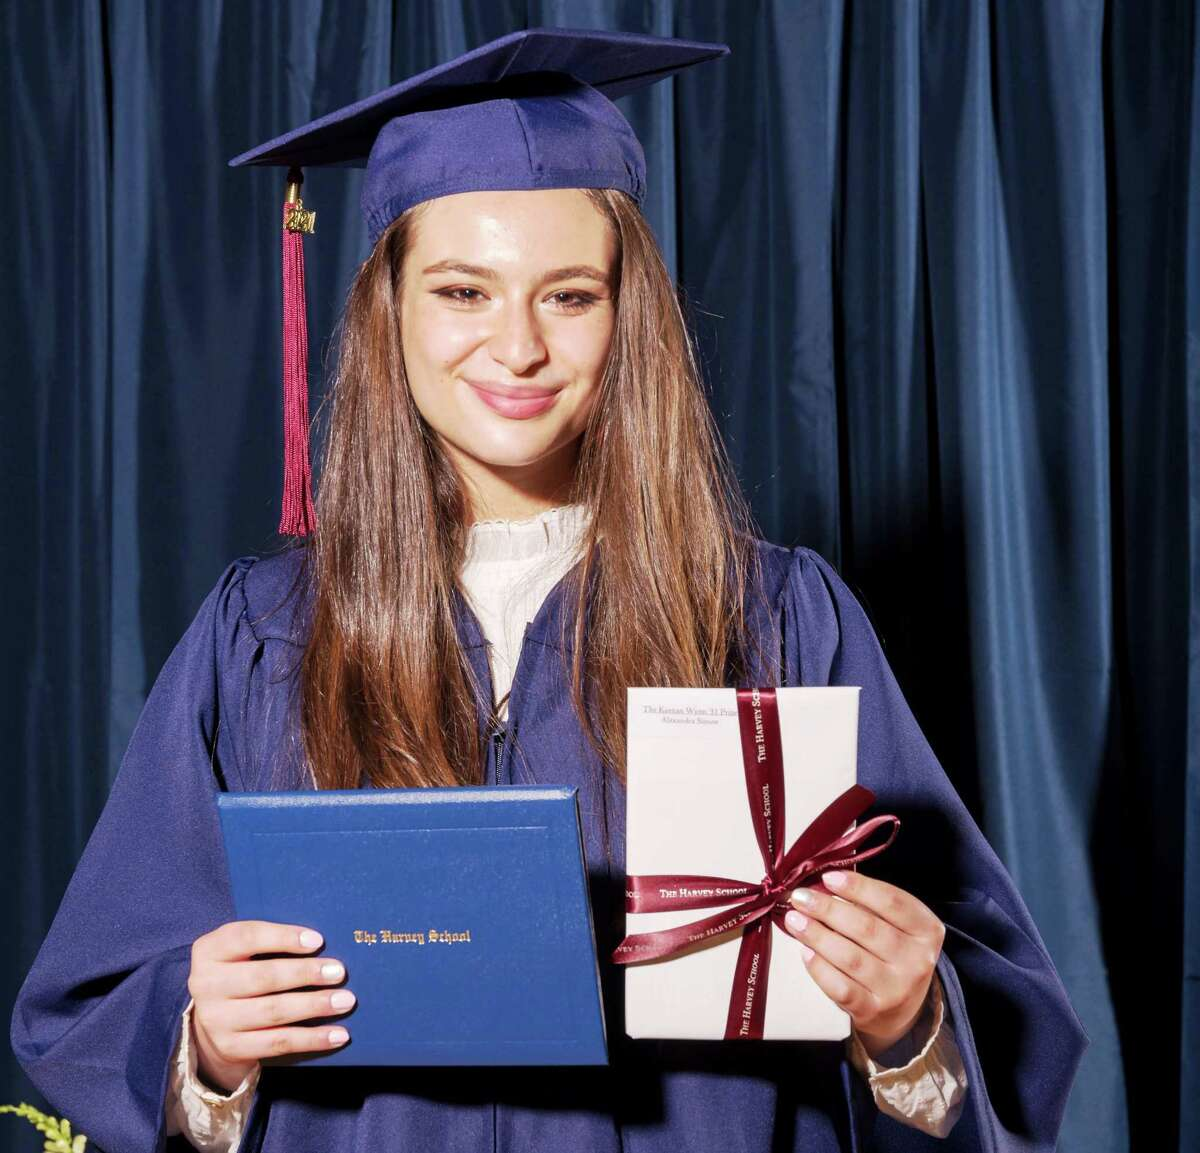 Alexandra Simon of Greenwich with diploma and drama award in hand at her Harvey School commencement June 10.